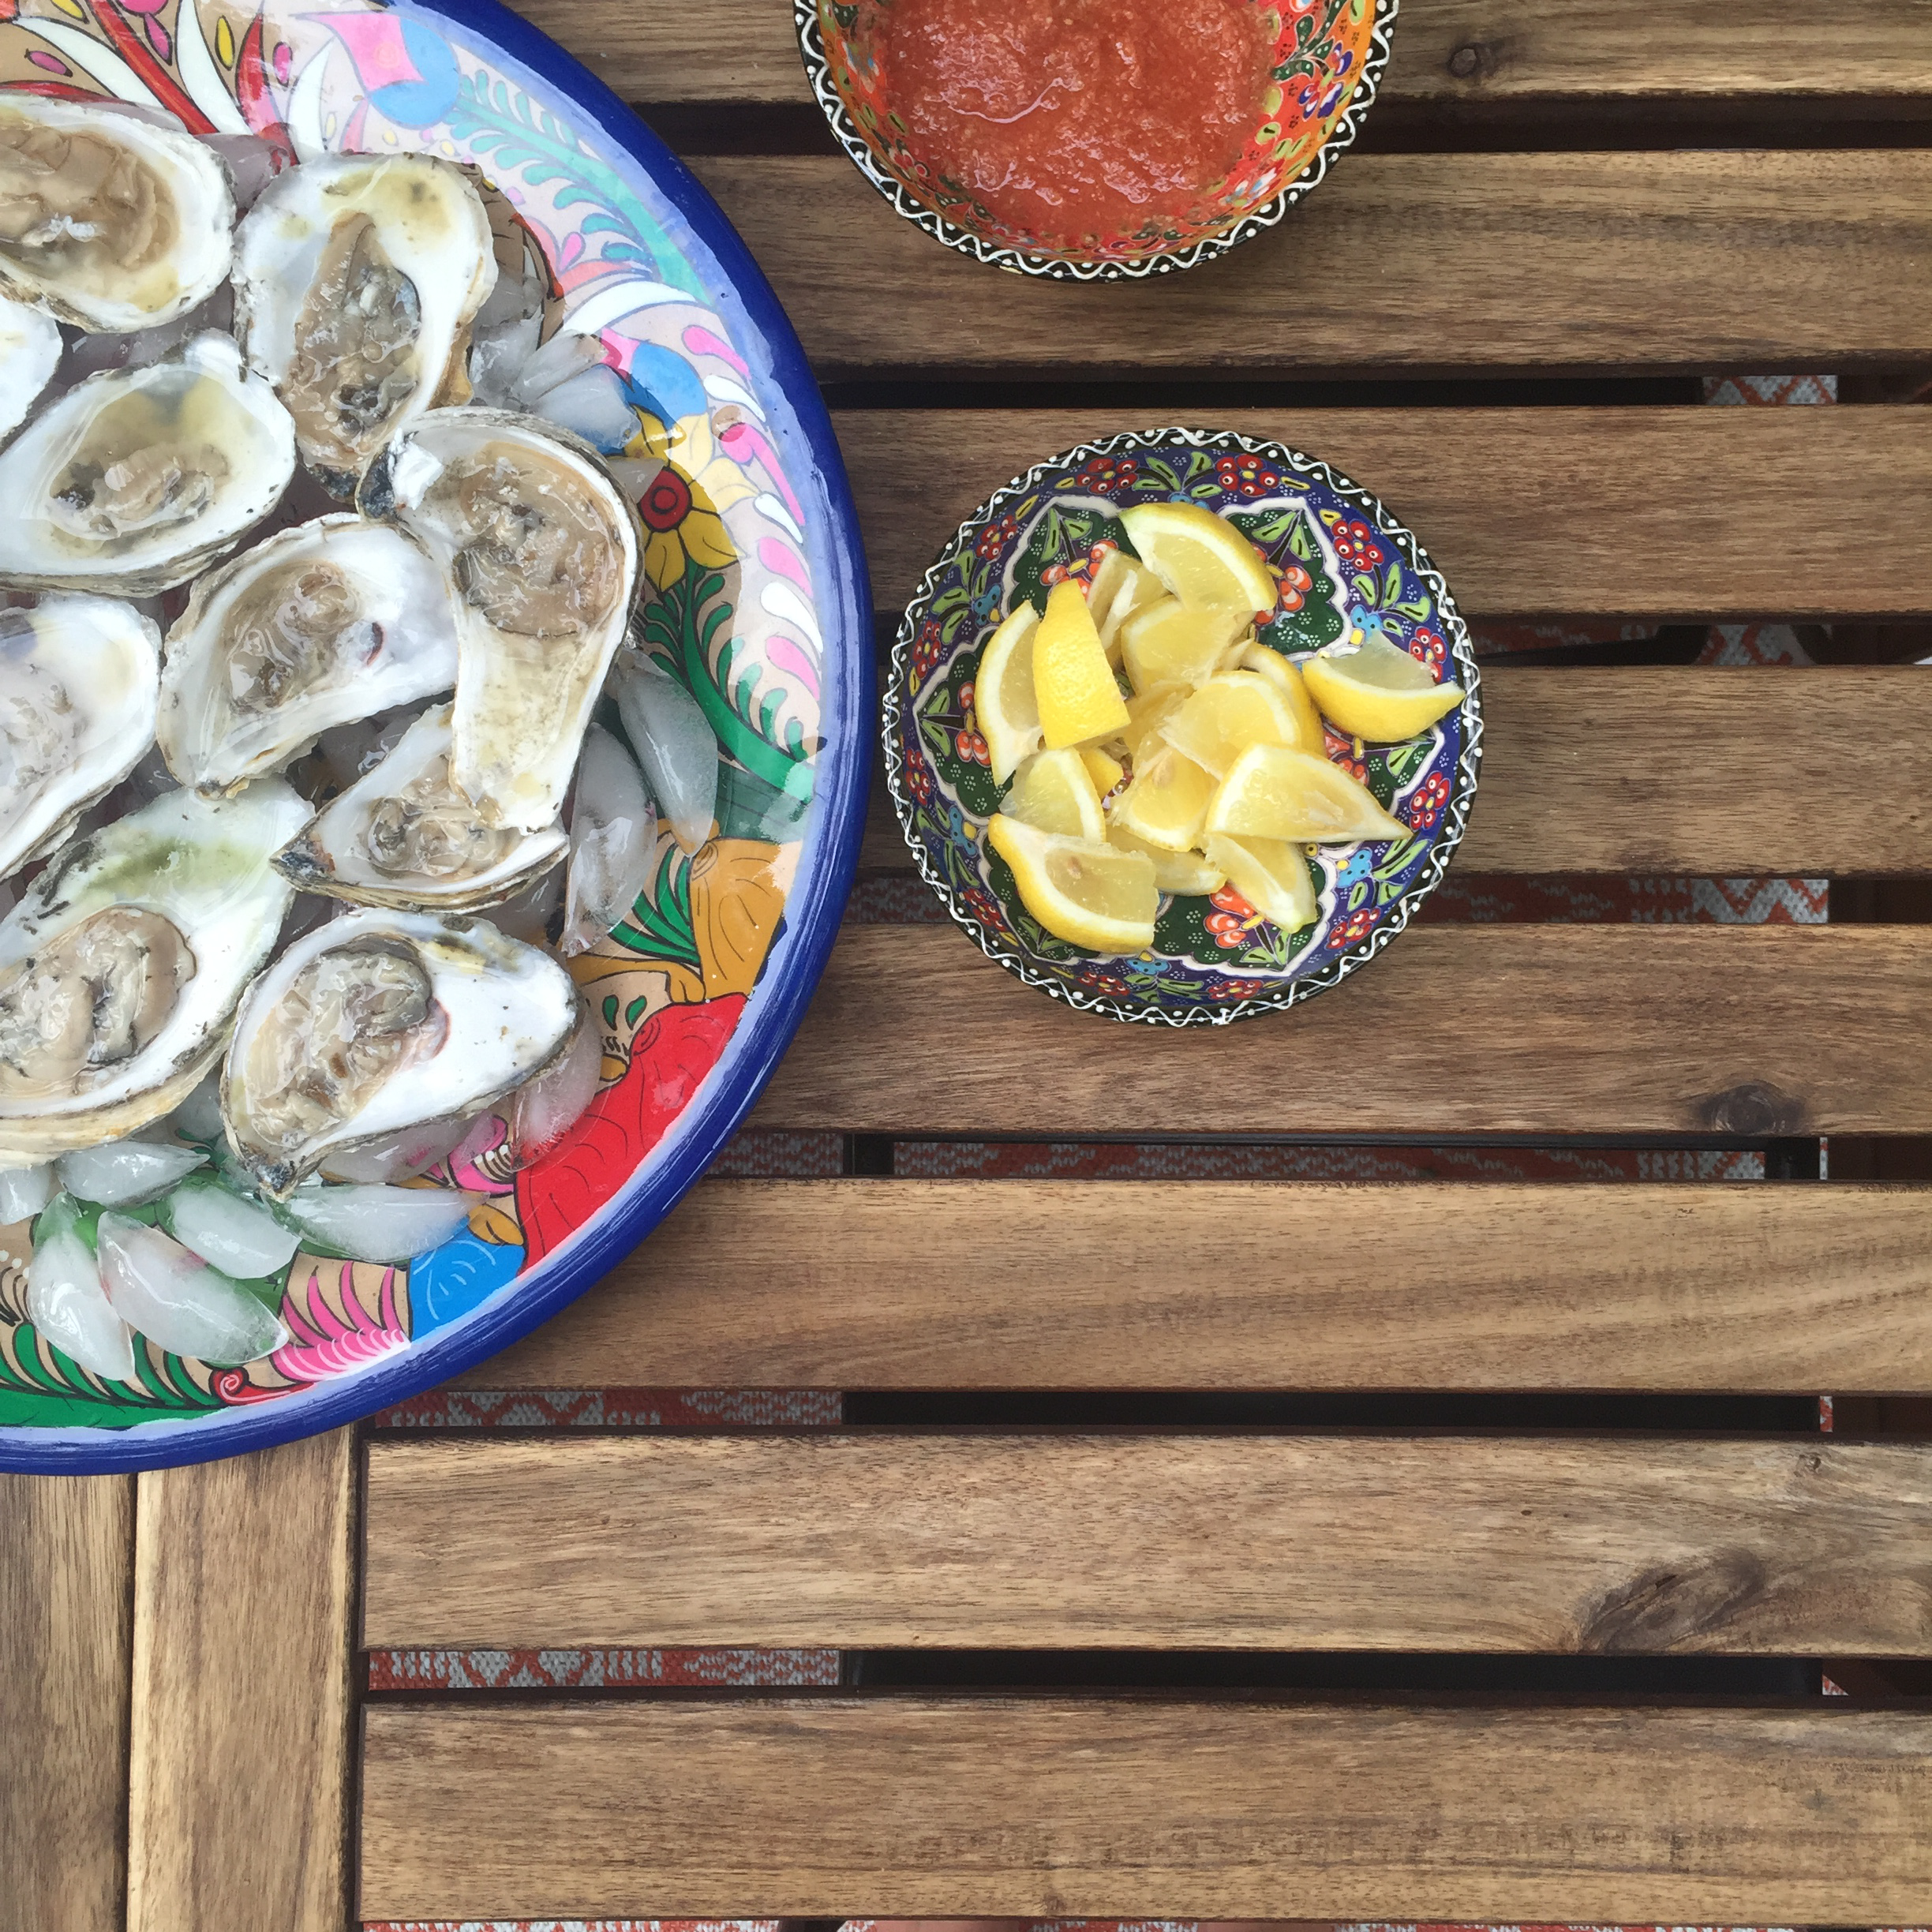 You can't go to Boston without eating 300 oysters.